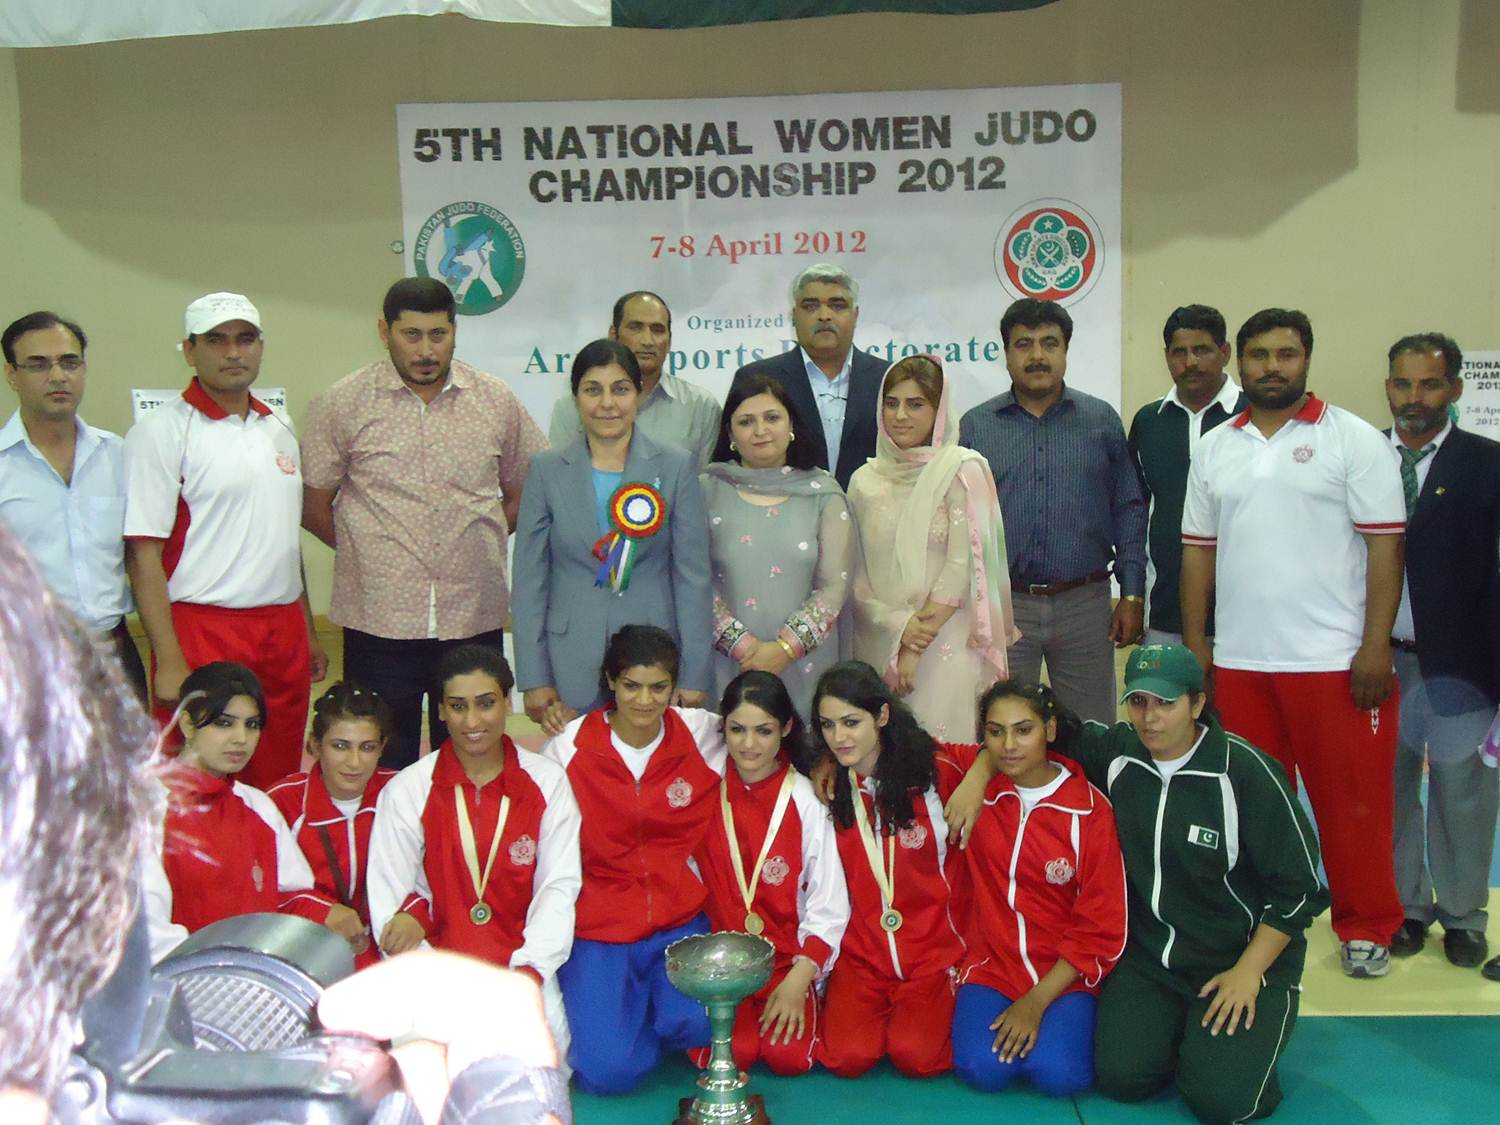 Final Results of the 5th Women National Judo Championships 2012